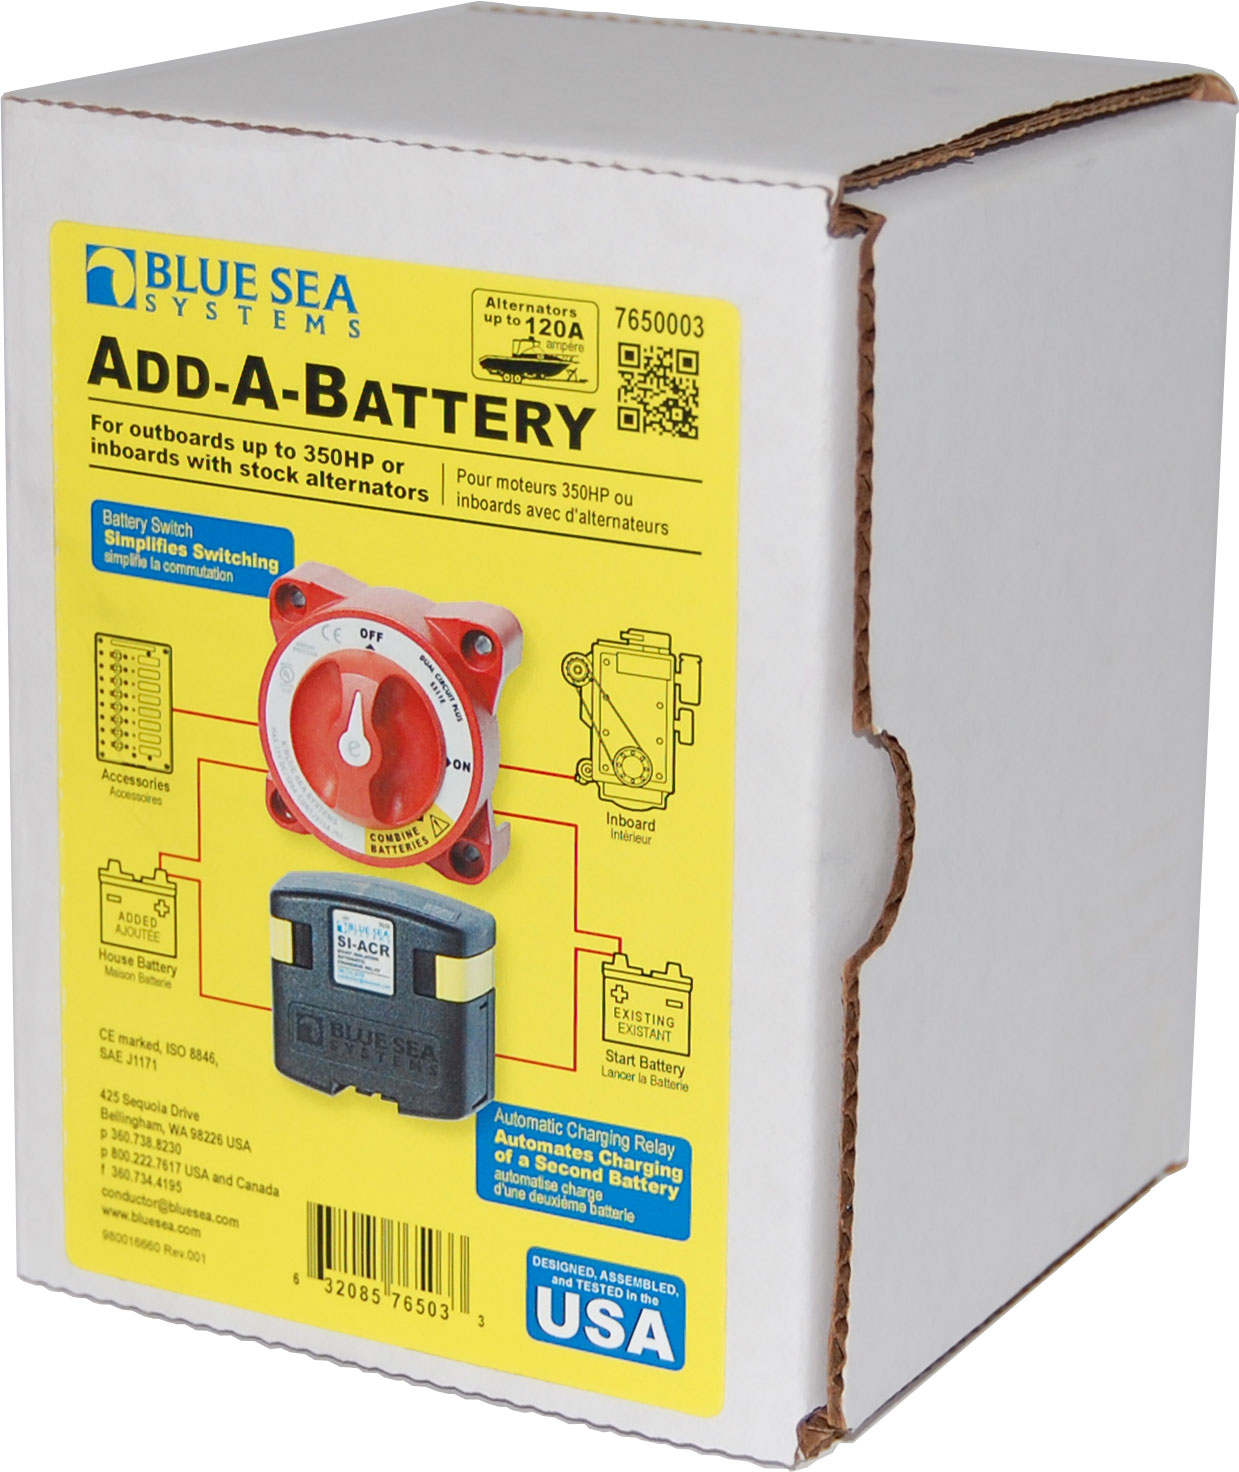 blue sea add a battery wiring diagram rockford fosgate capacitor automatic charging relay marine